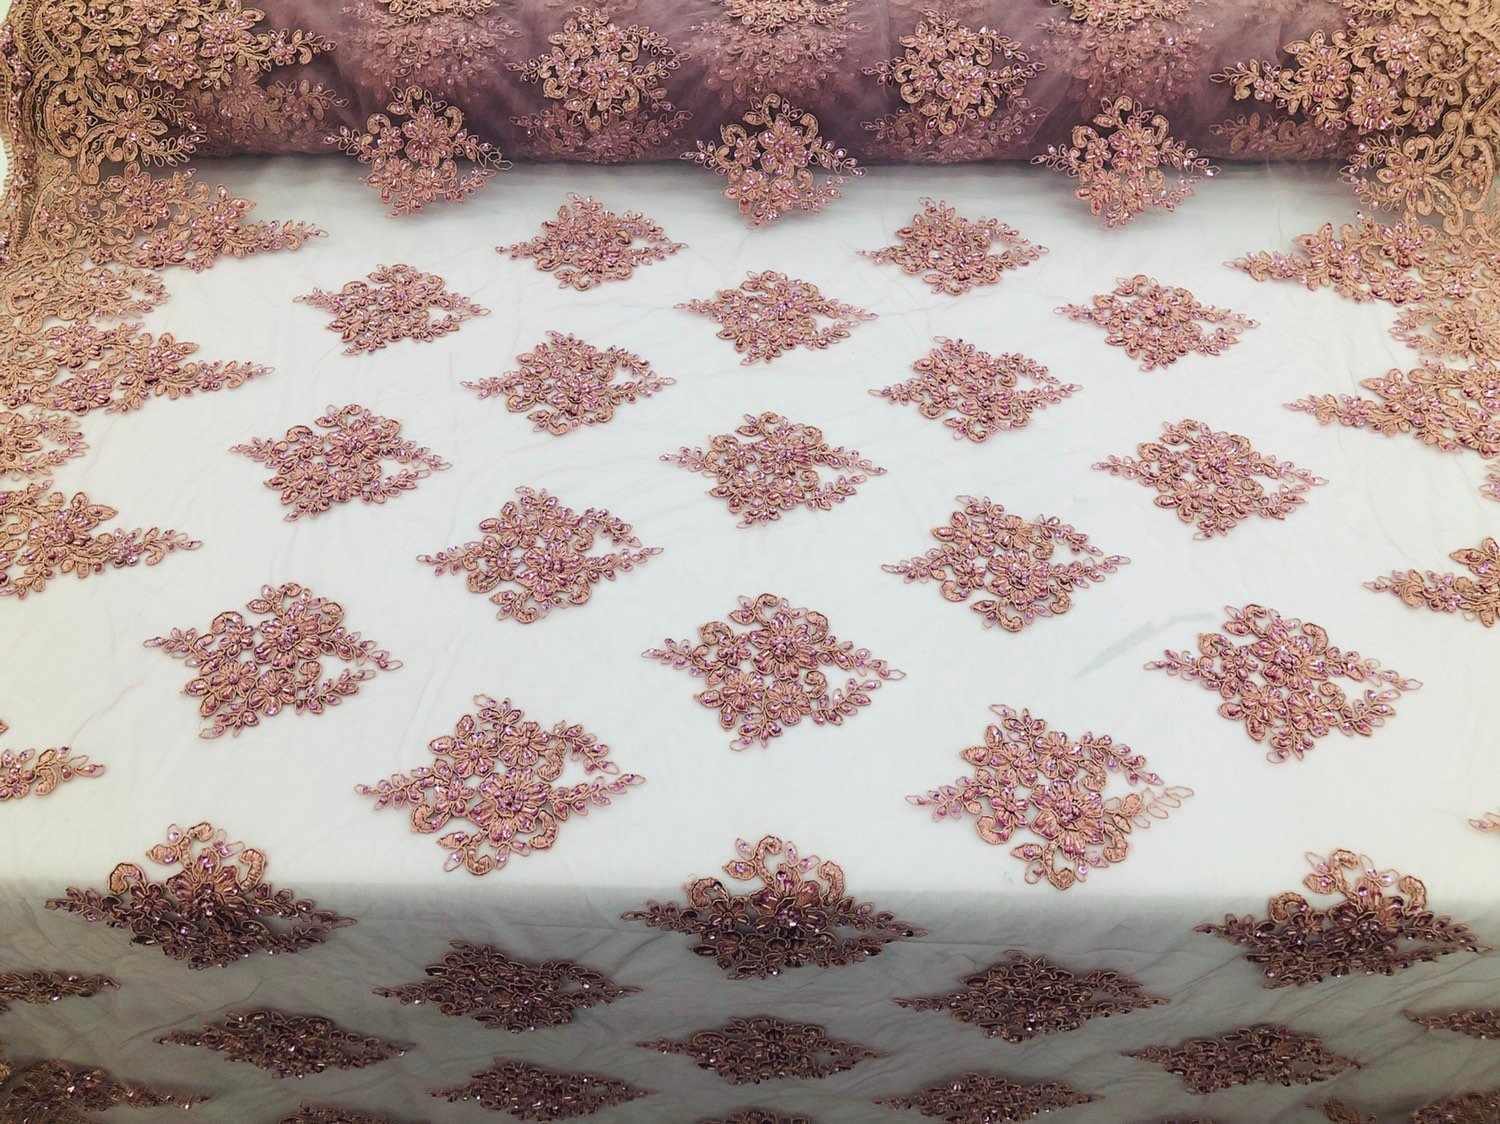 Dusty Rose Beaded Fabric, Lace Fabric By The Yard - Embroider Beaded On A Mesh For Bridal Veil Flower-Floral Mesh Dress Top Wedding - KINGDOM OF FABRICS